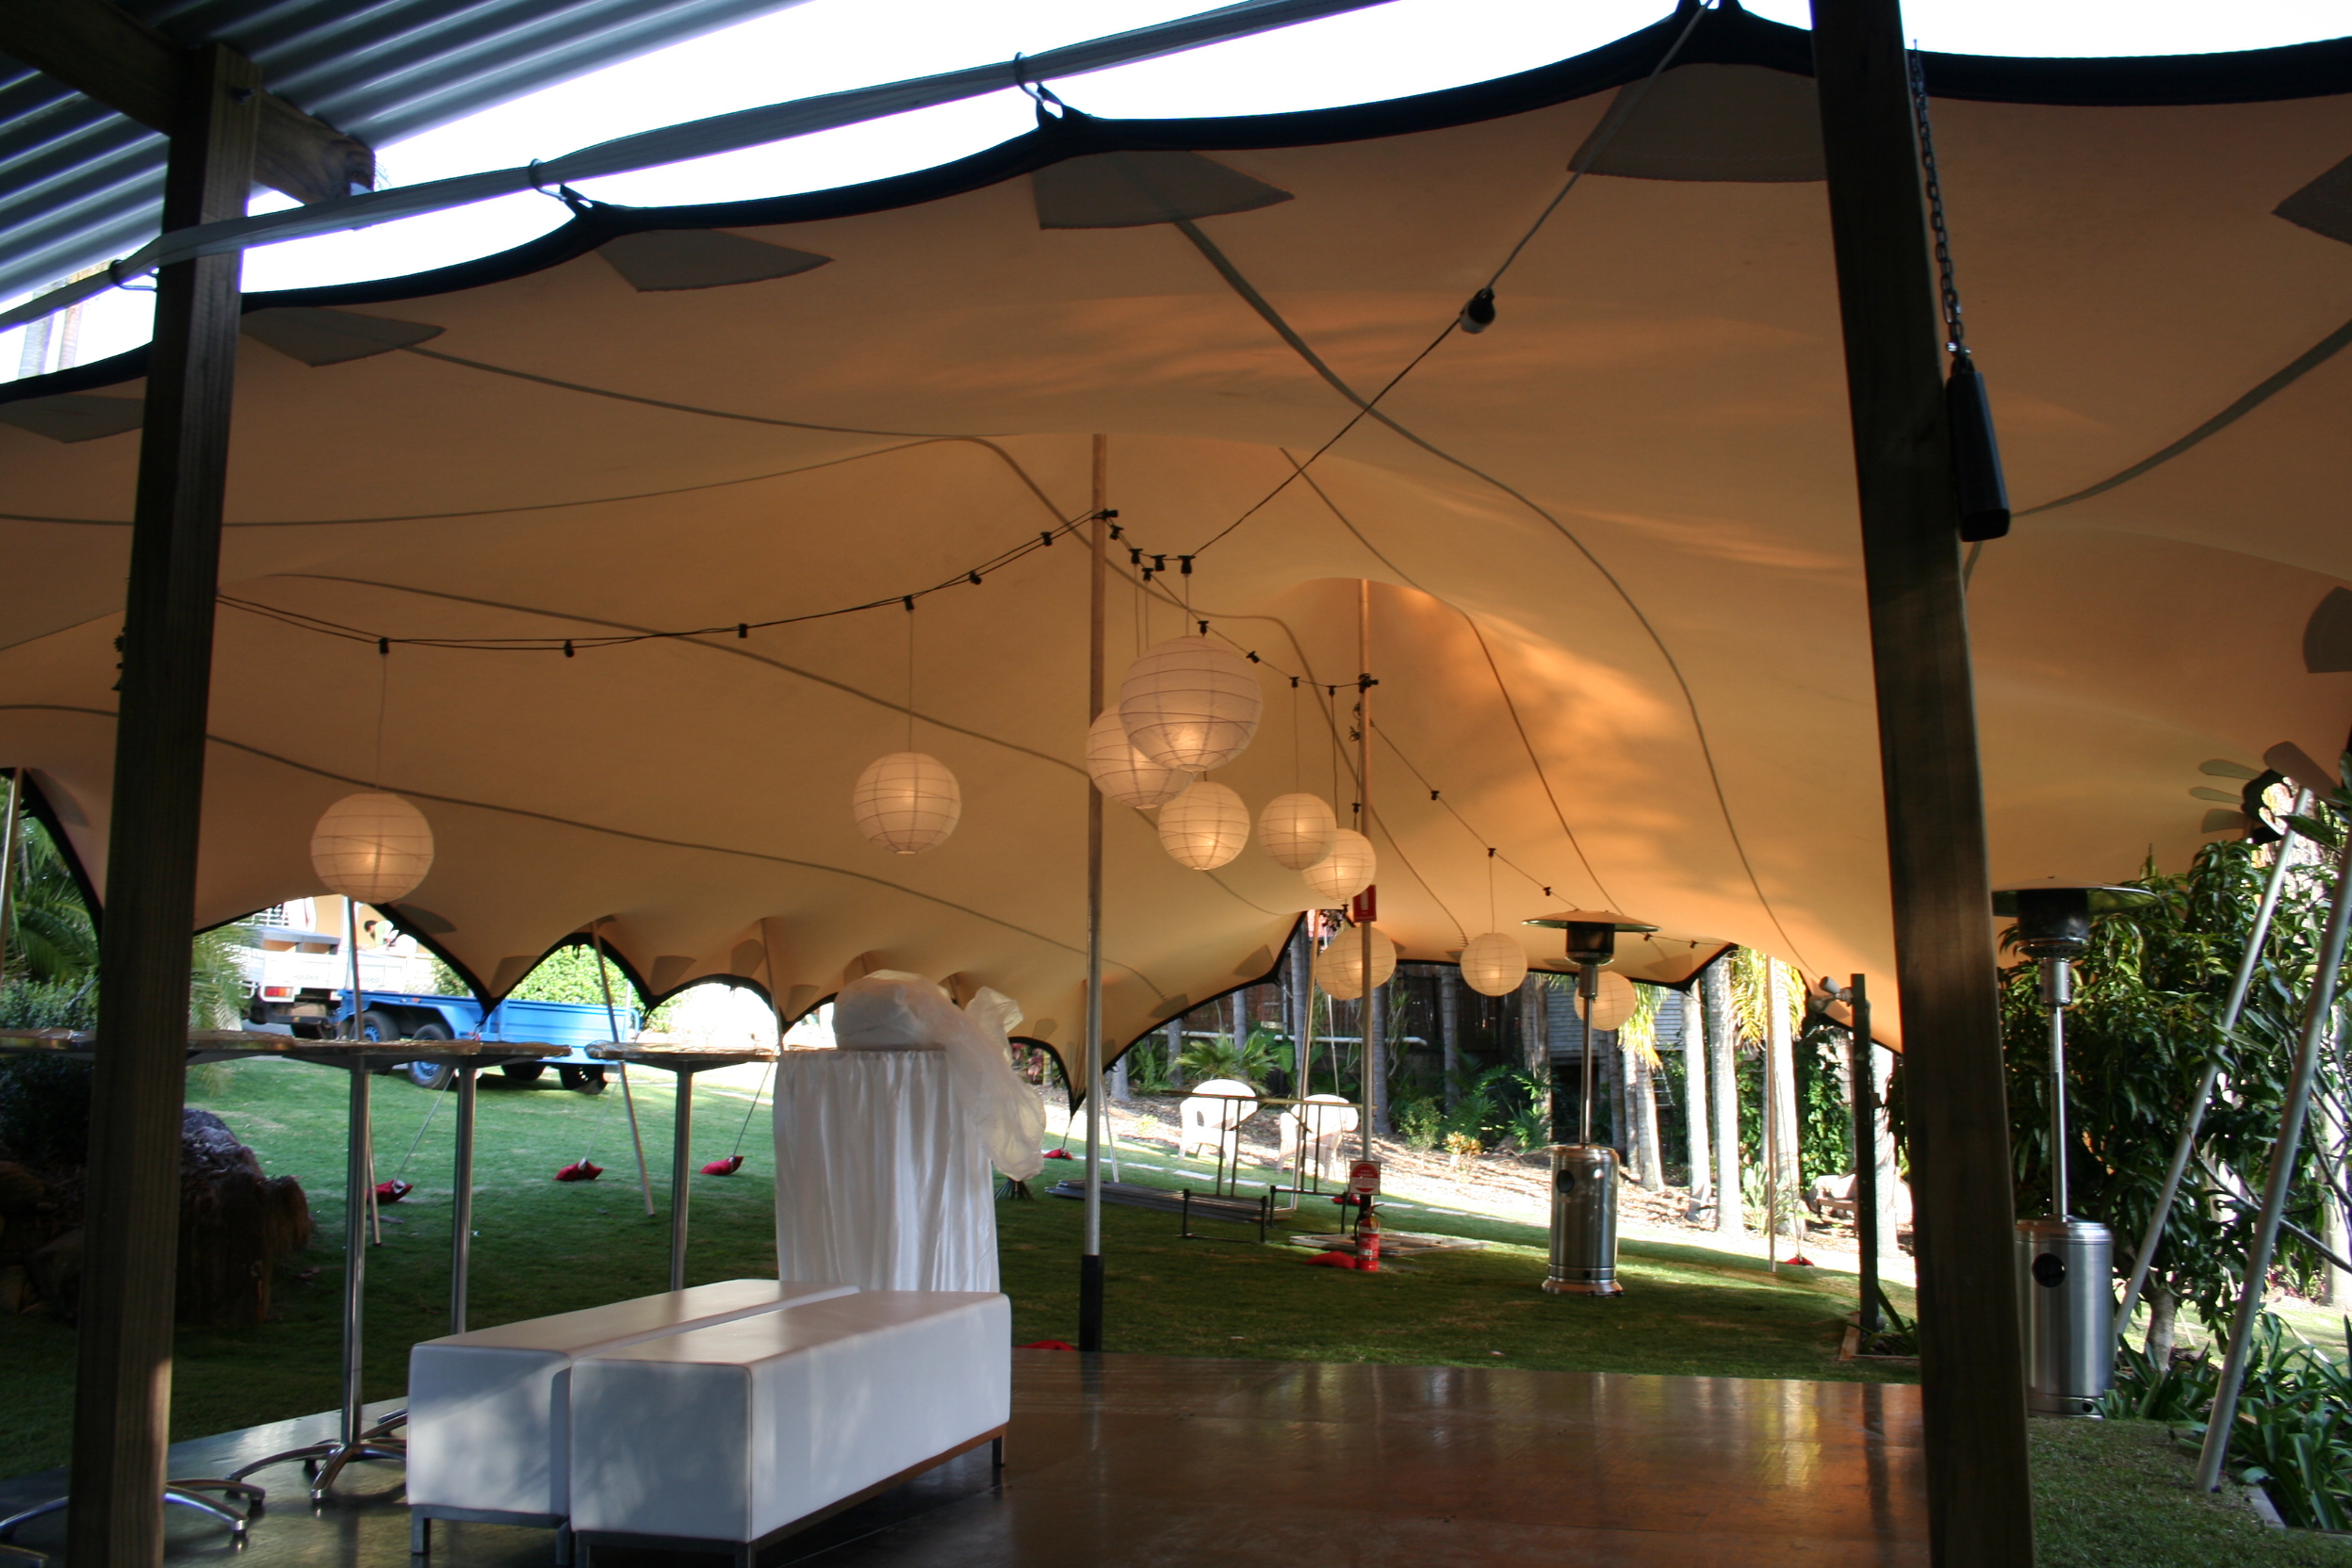 Marquee tent hire for events & Stretch Tents u0026 Marquee Hire Melbourne - Nomadic Tents Australia